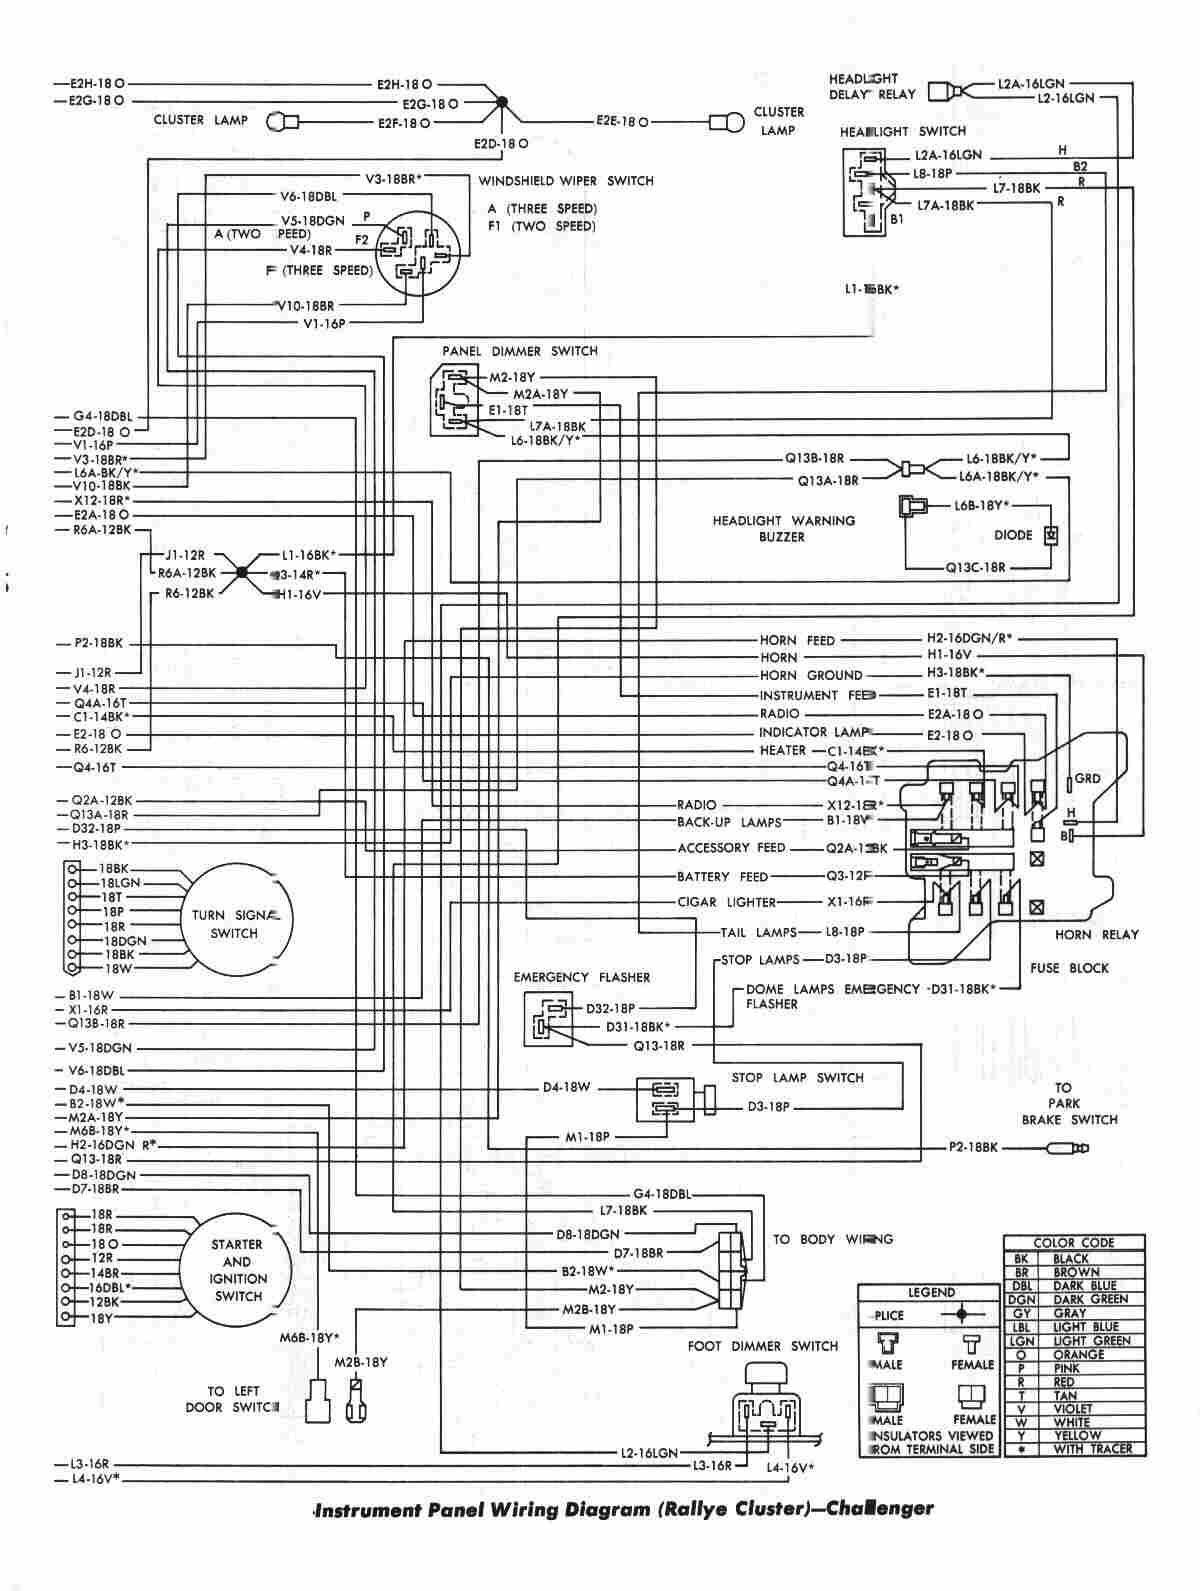 a1b2fe5521d0a432f48af13a991a4c68 R Alternator Wiring Diagram on ford tractor, delco one wire, vw beetle, ford 2g,